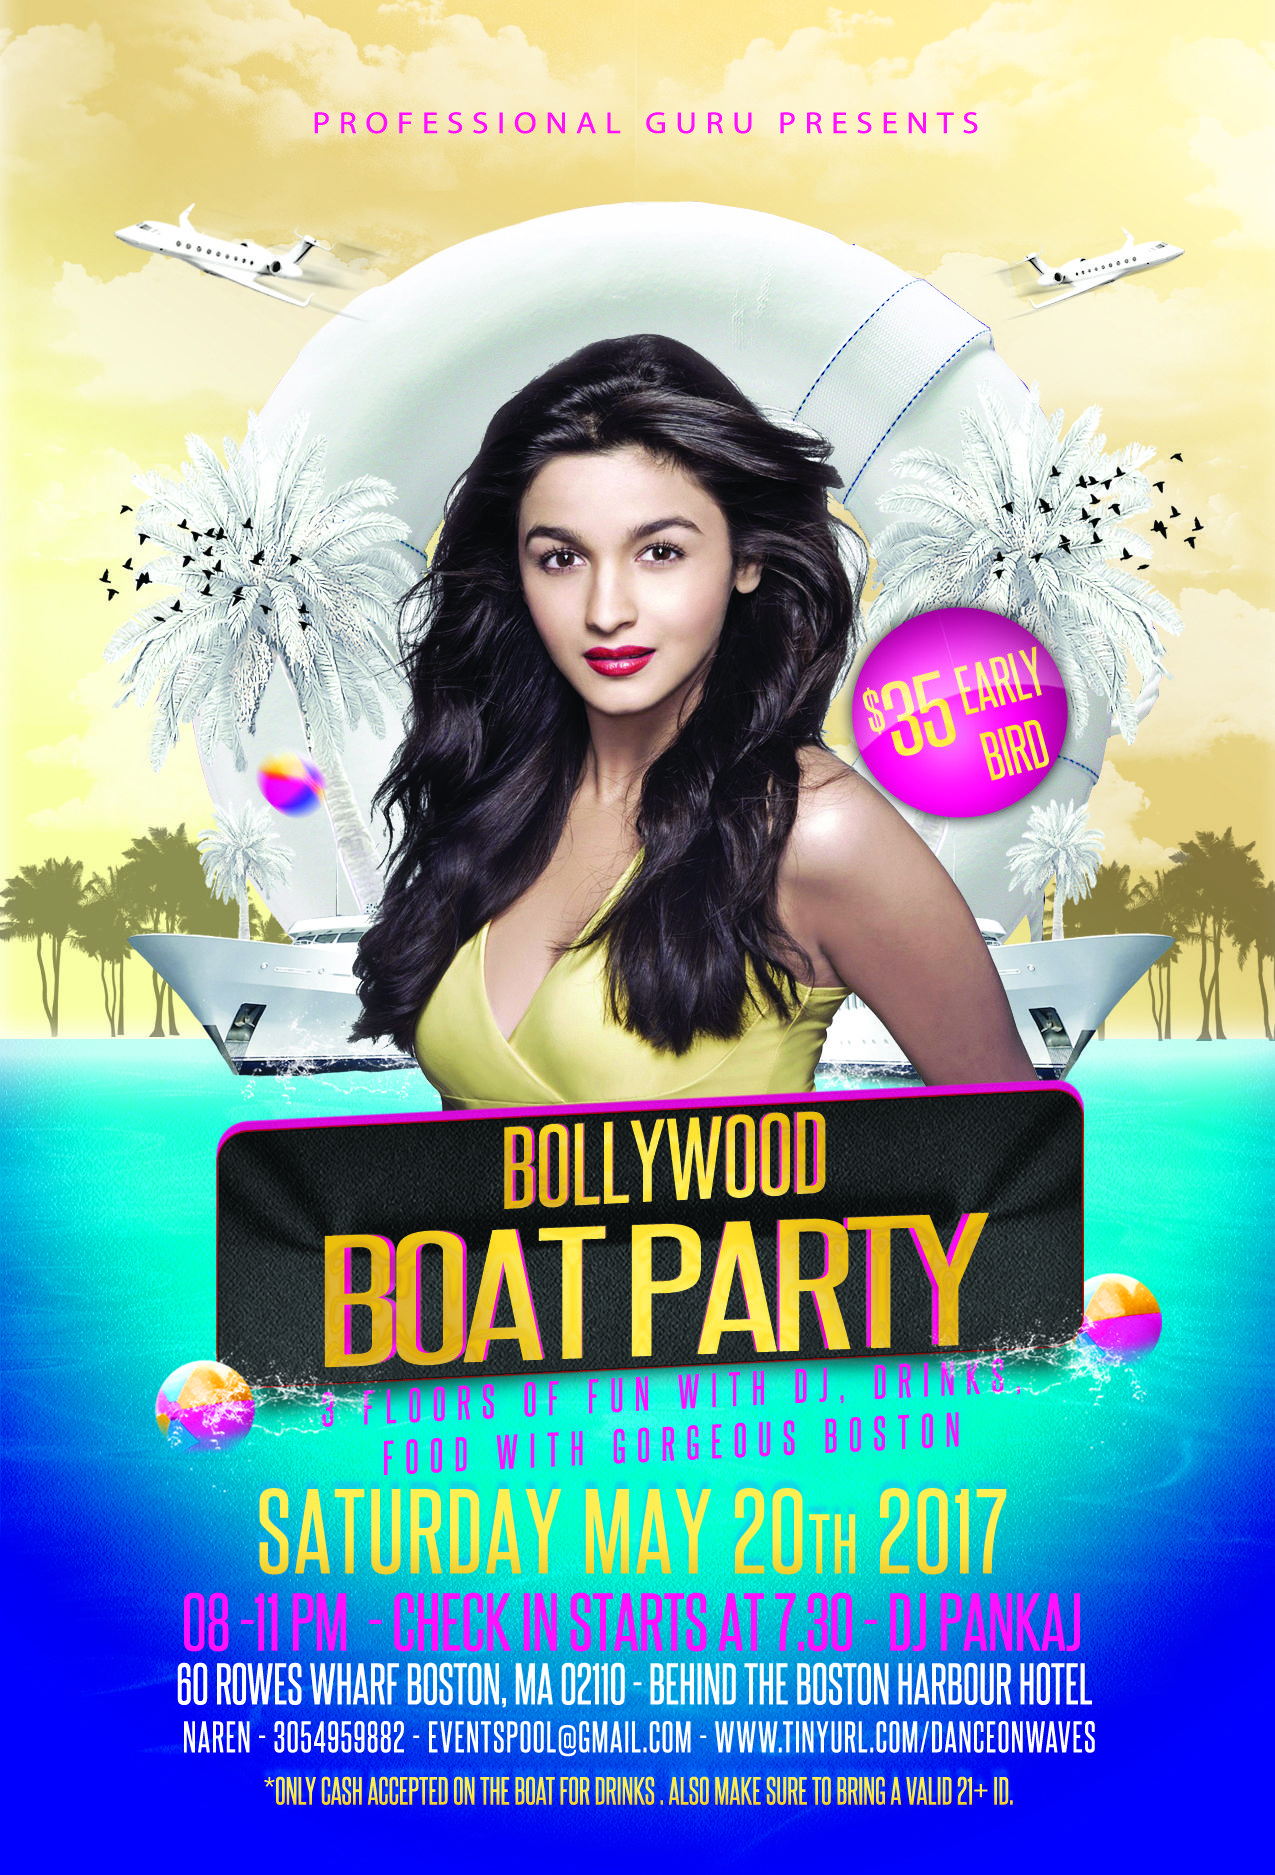 BOLLYWOOD BOAT PARTY